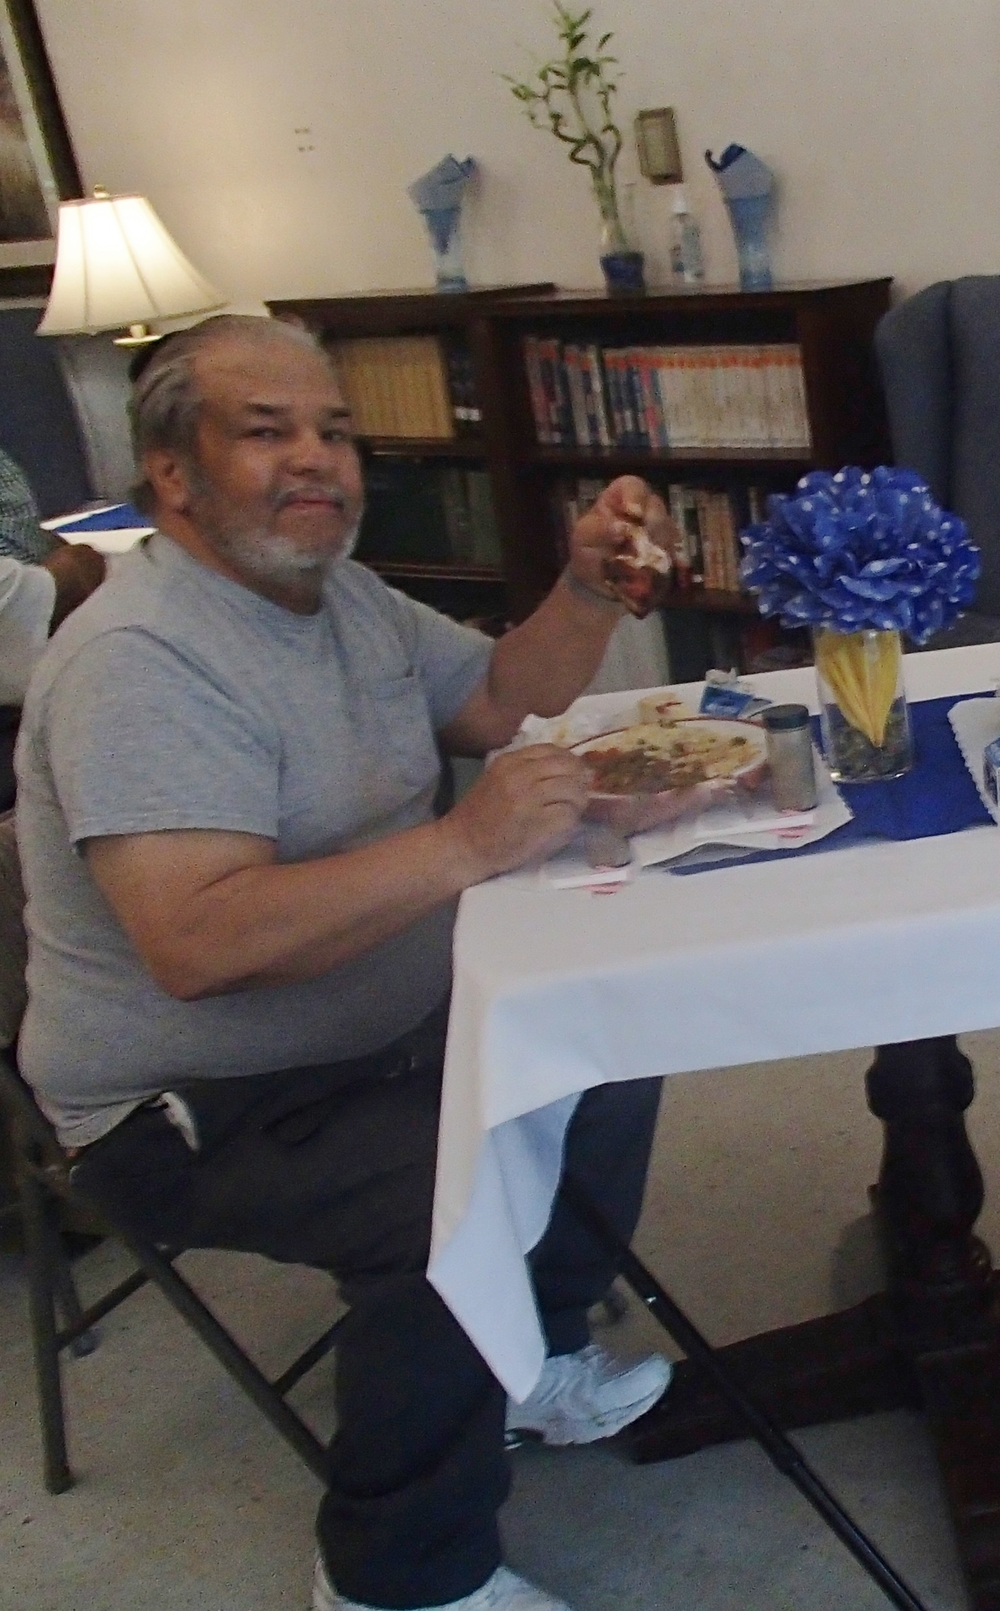 Mr. Norman Ridgeway is enjoying the special father's Day Meal.